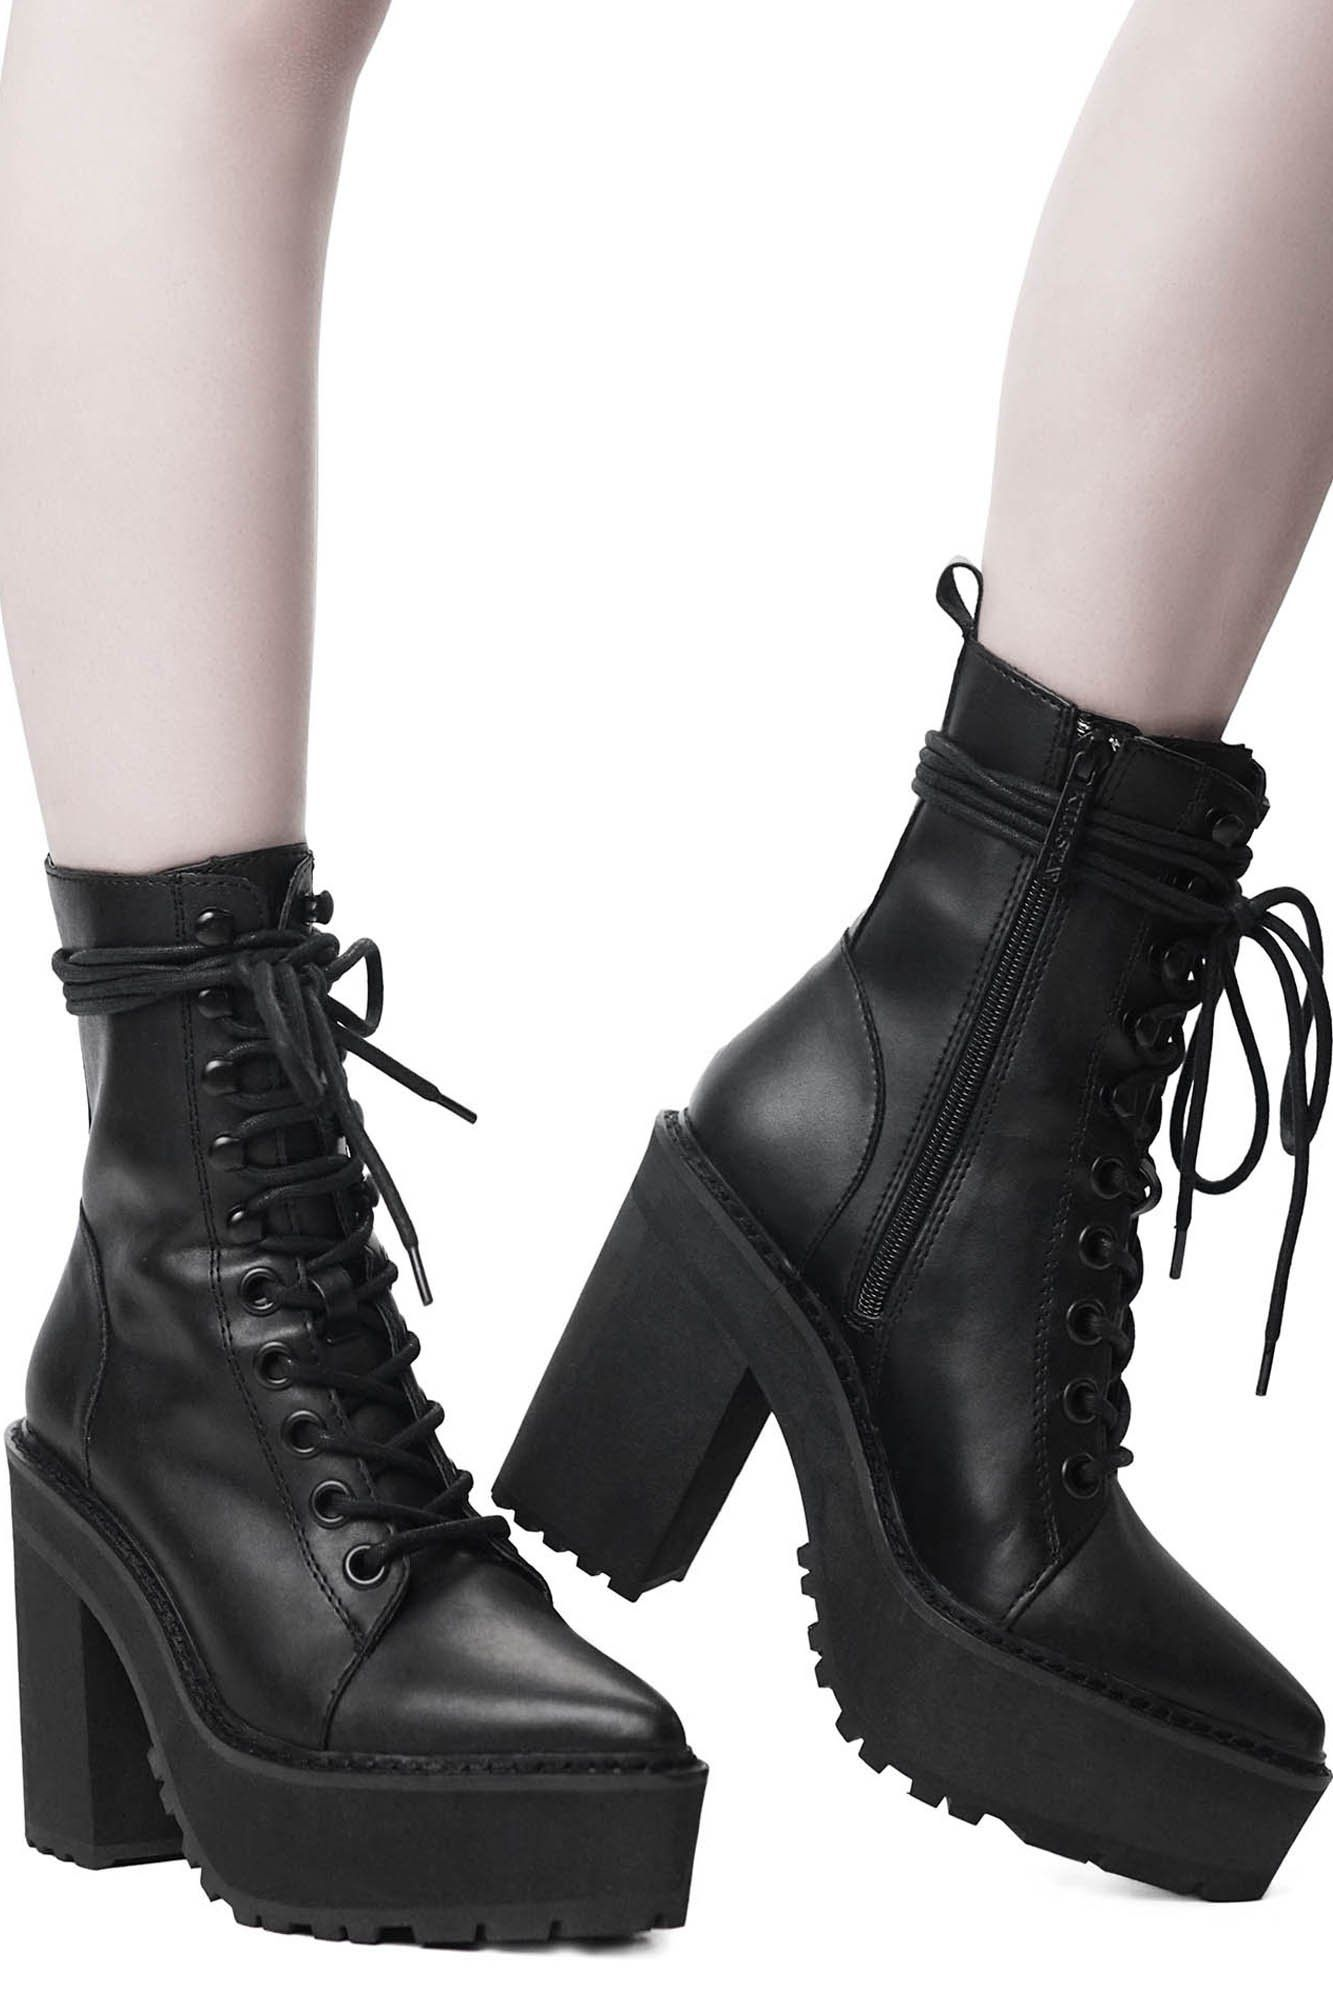 9674263323b7 Salem City Boots. We are the children of the witches before us.